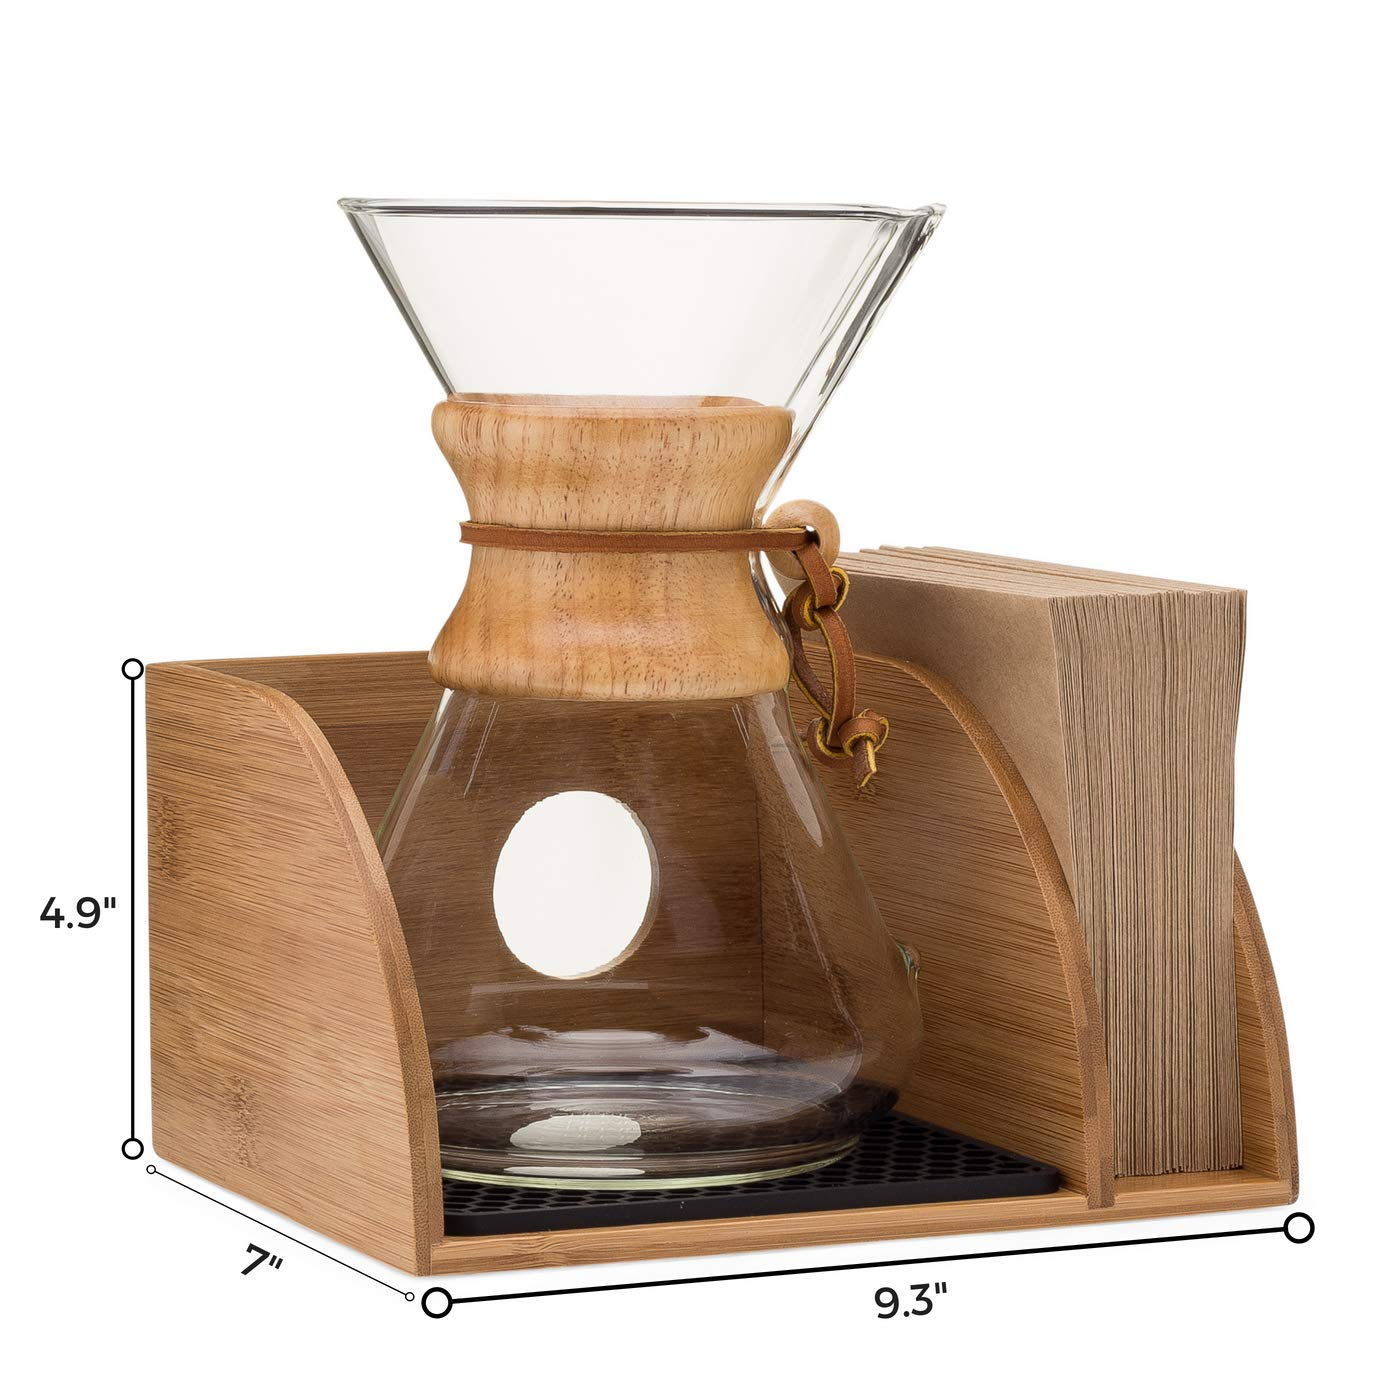 Amazon.com: Organizador de café.: Kitchen & Dining